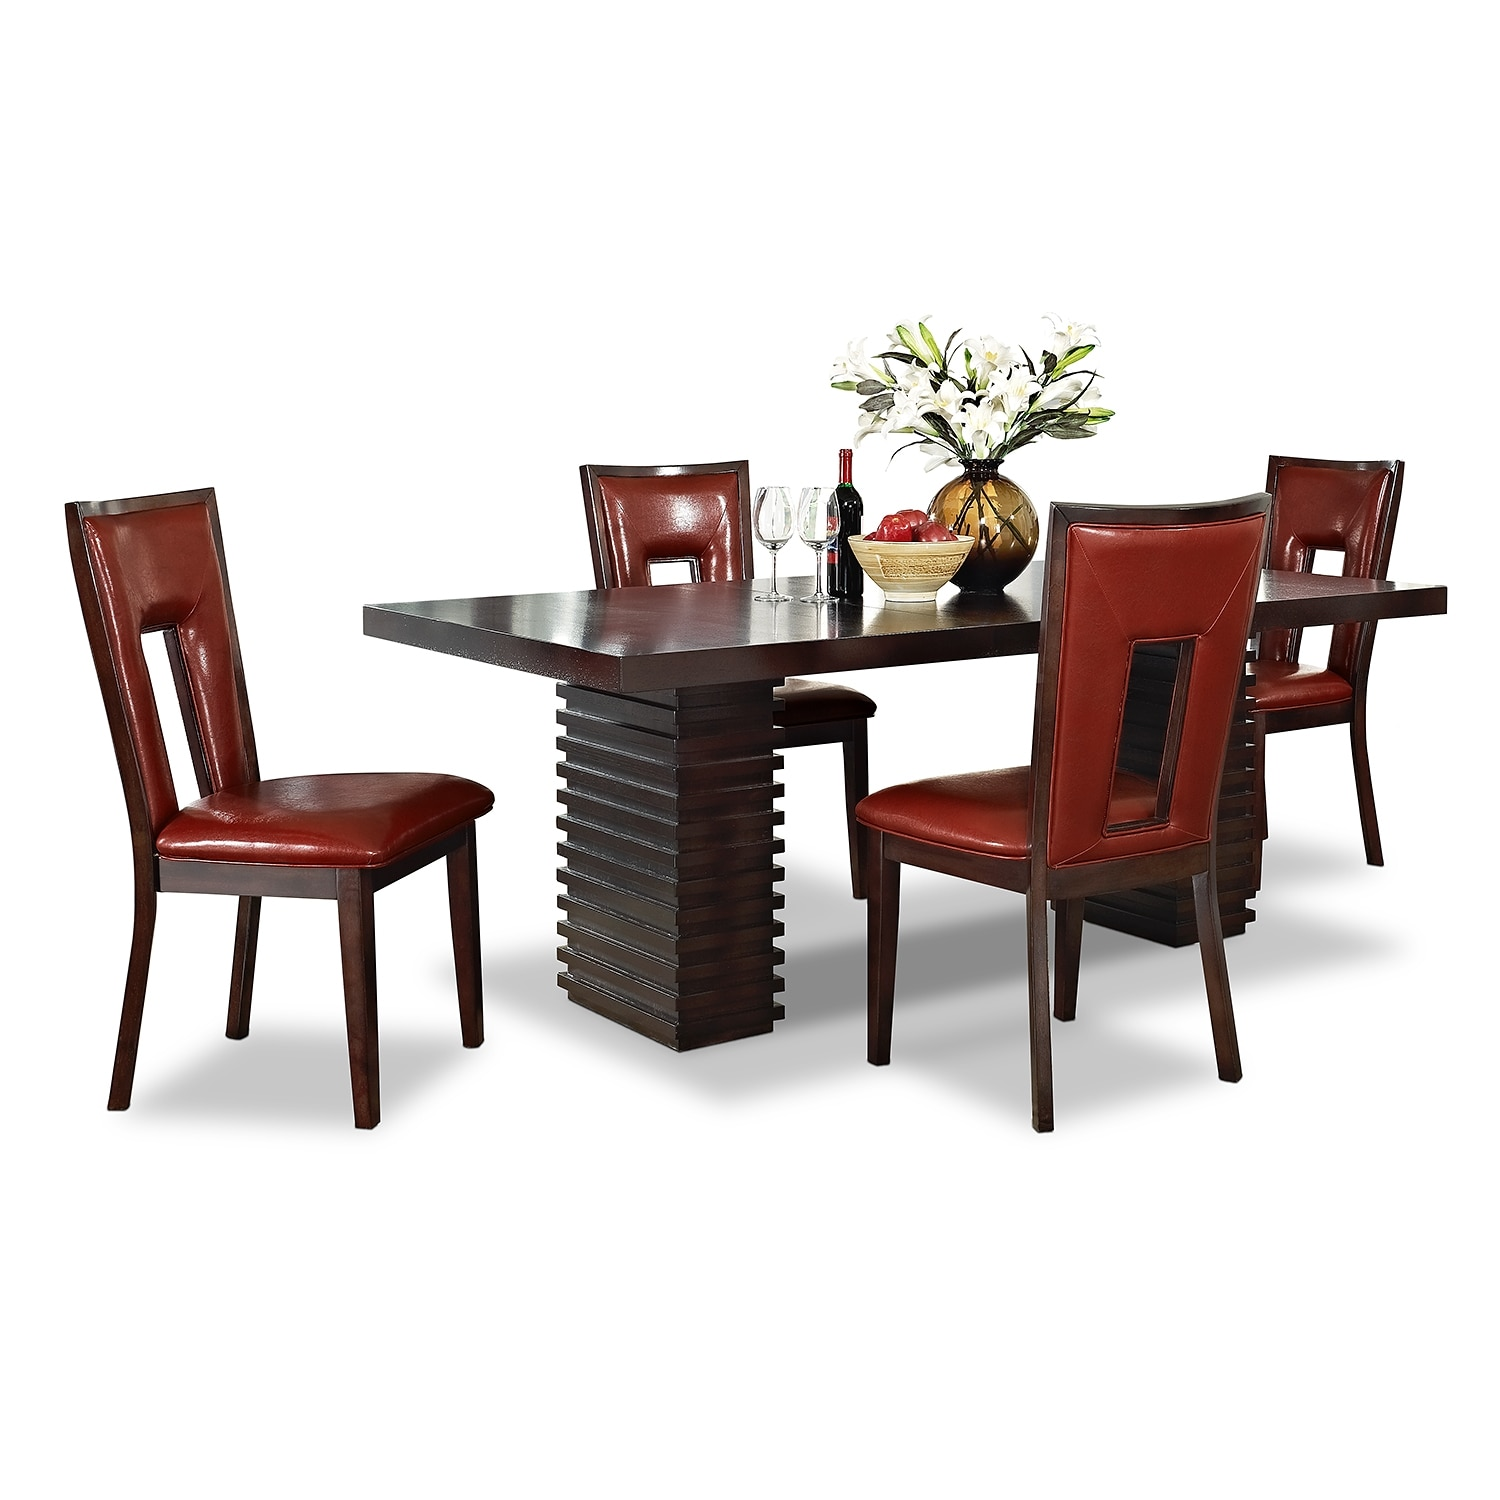 Dining Room Furniture - Paragon Table and 4 Madera Red Chairs